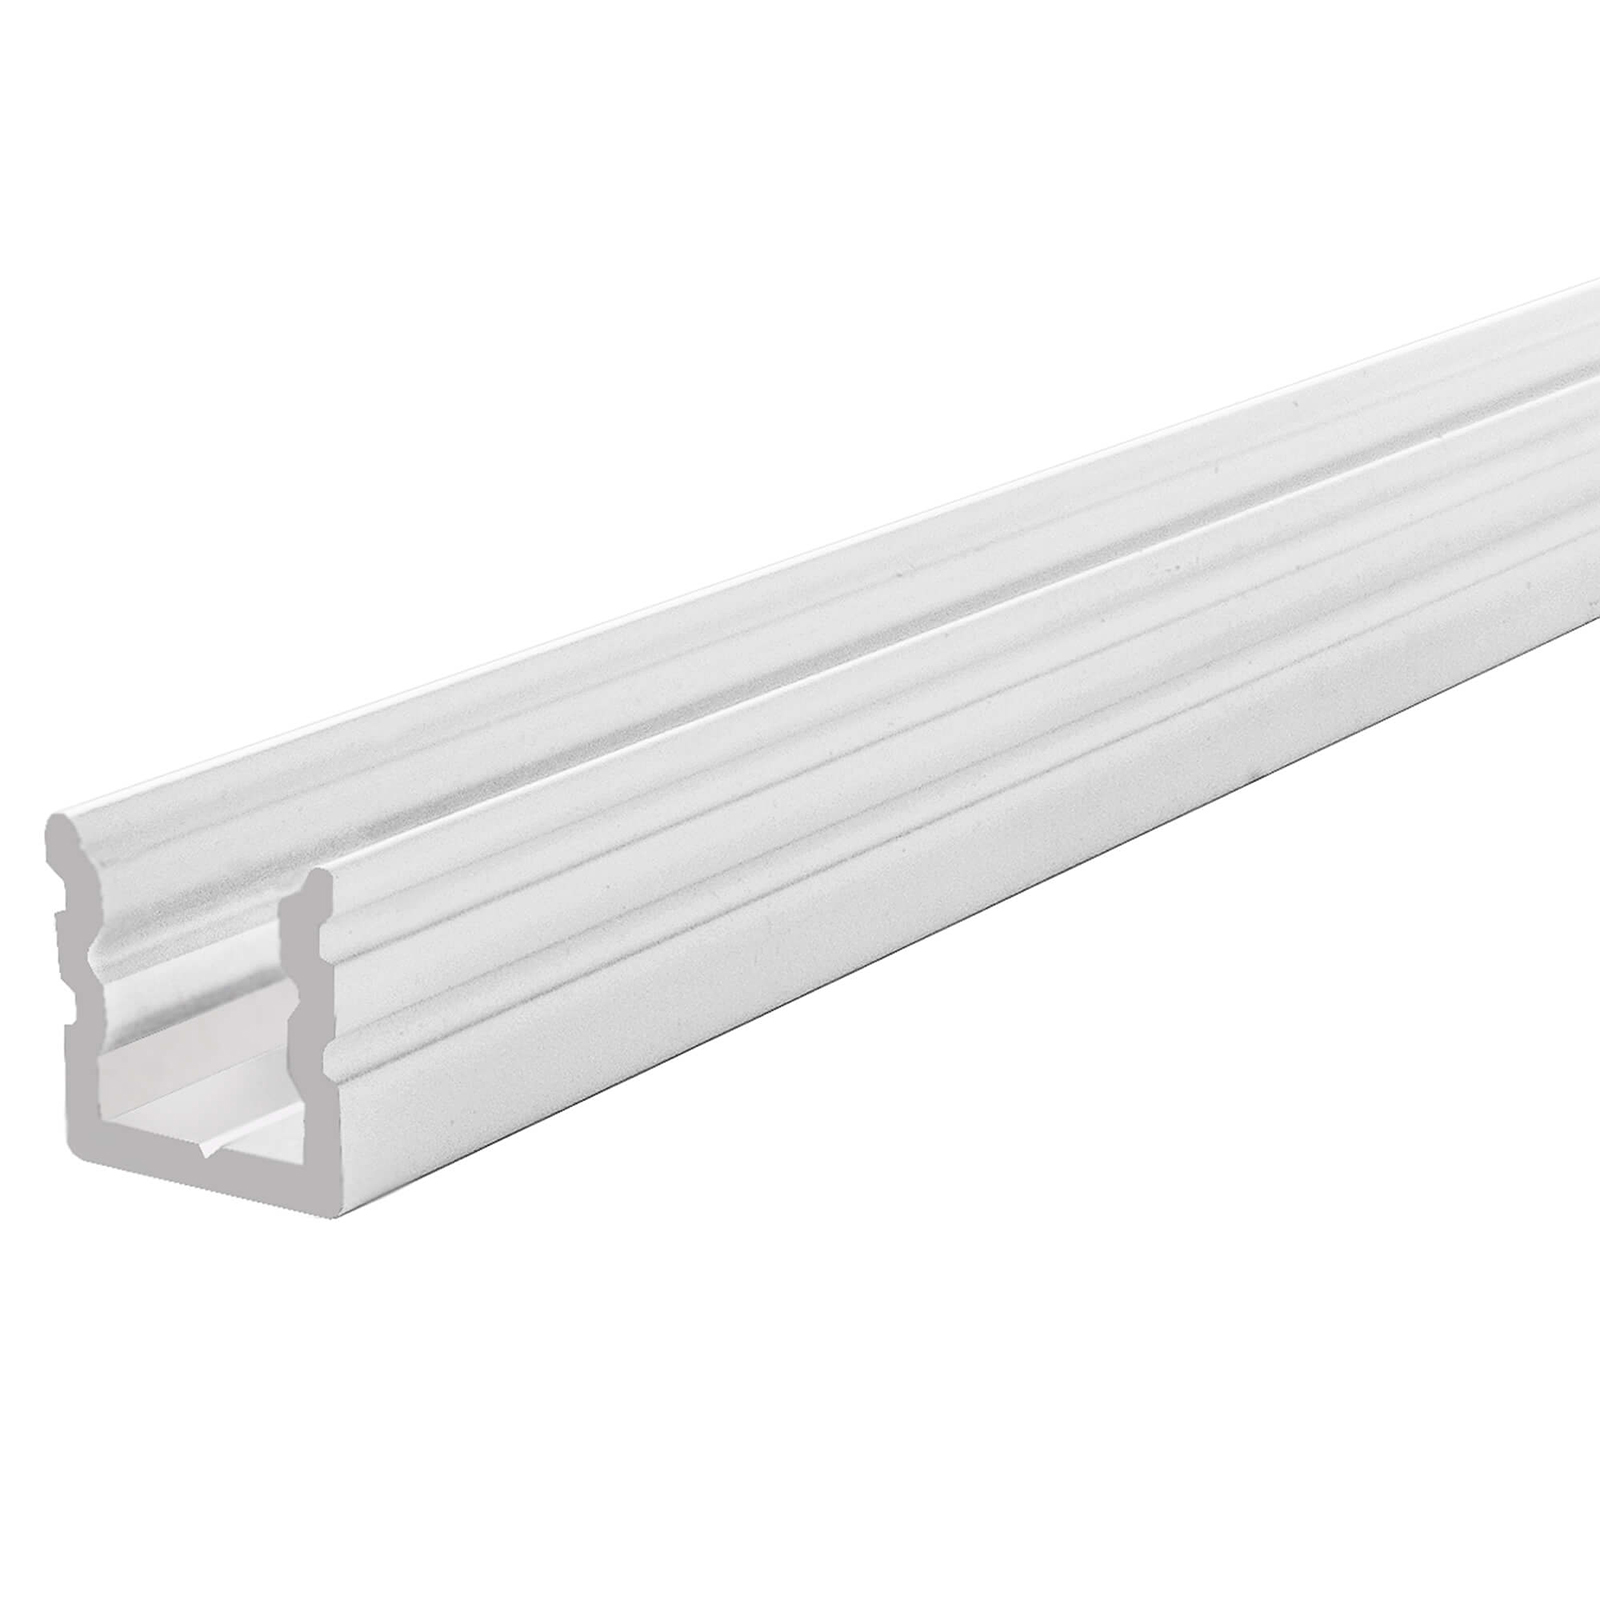 Profile bar, LED linear light, recessed, aluminum profile U-HIGH for strips and led strip